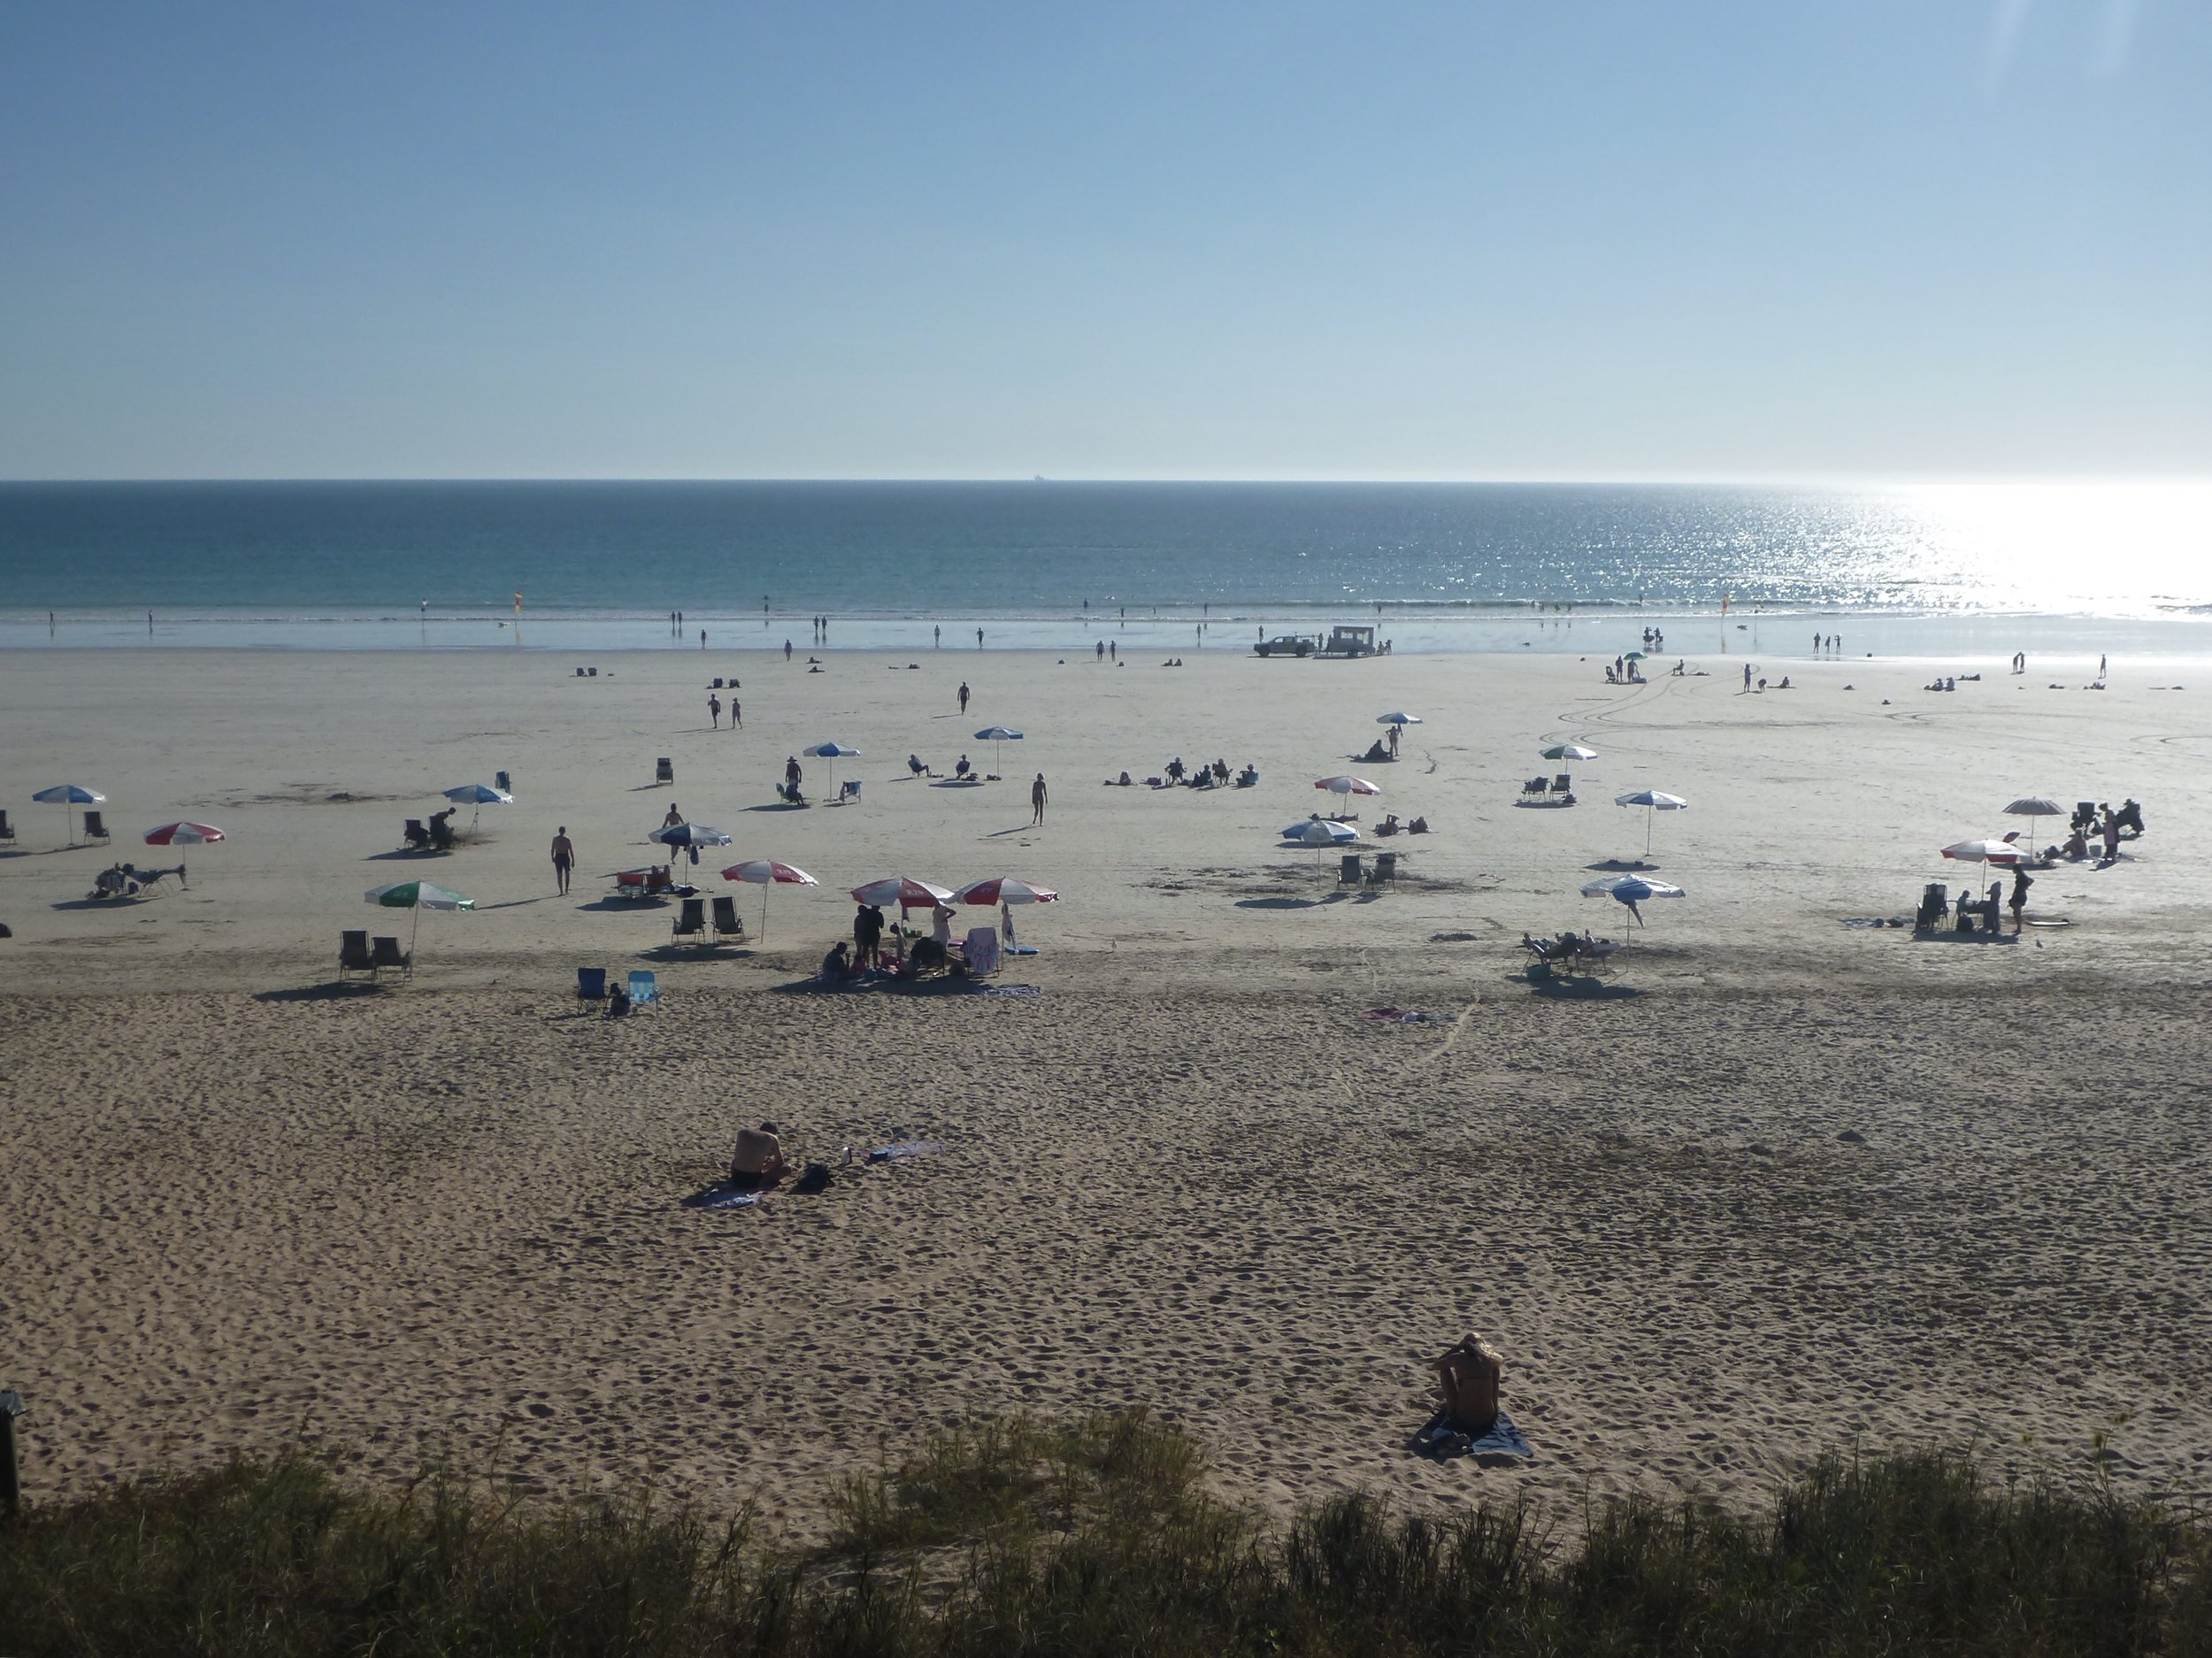 Cable Beach looking magnificent. At low tide it's quite a walk to the sea but it doesn't bother anyone. The beach just goes on and on and it's a lovely spot to kick back and relax.